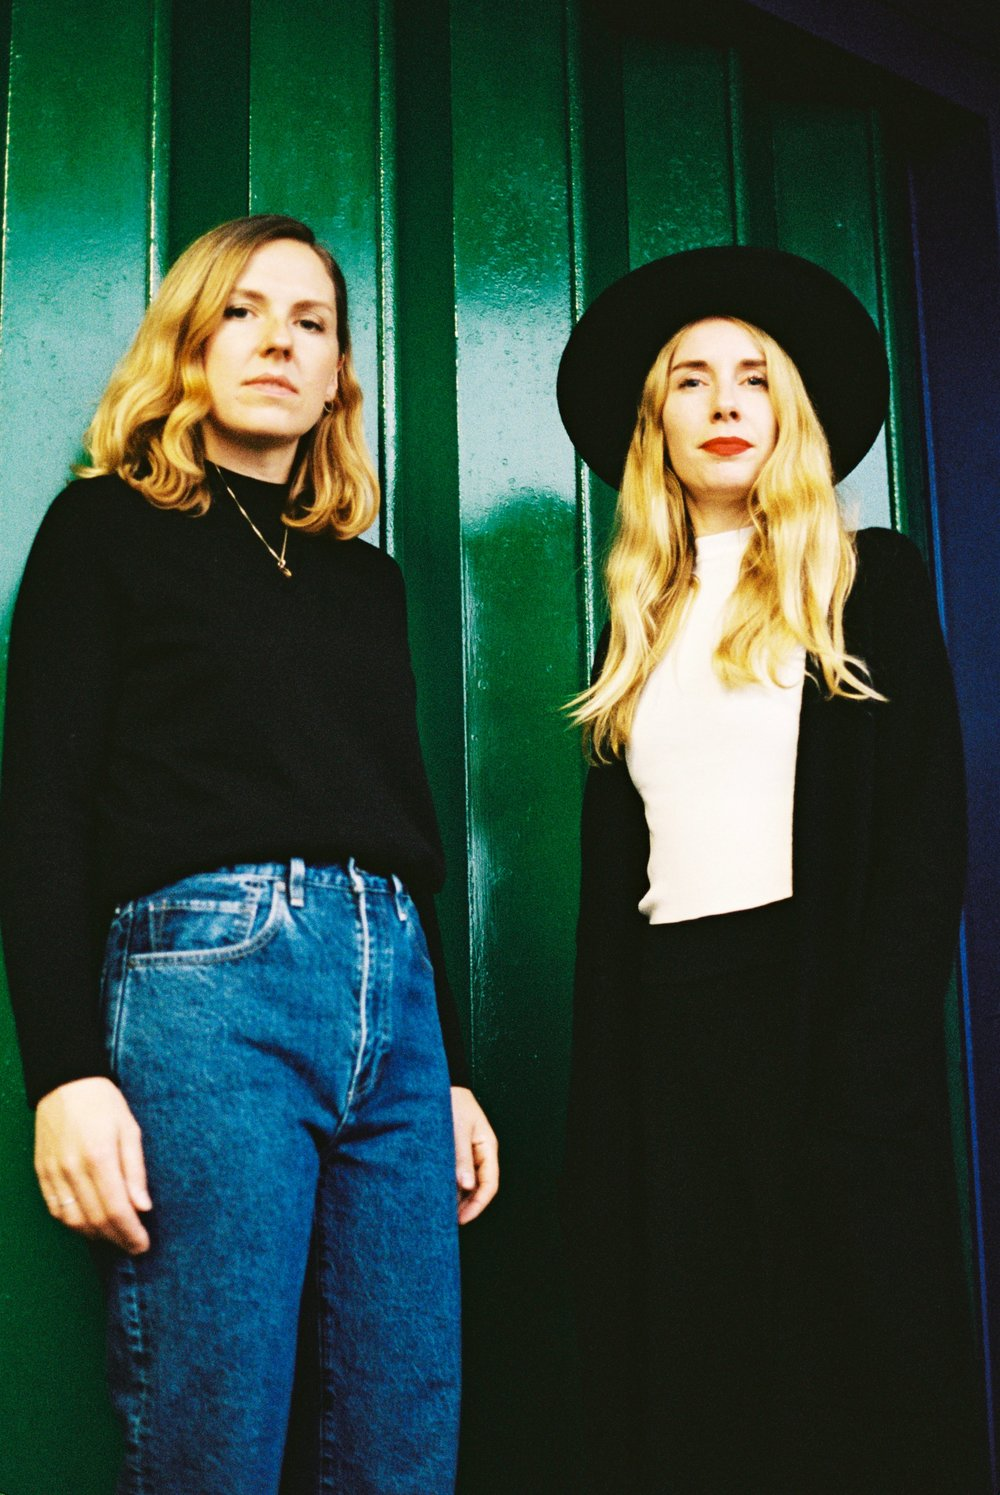 Grace Winteringham & Anna Murrayof Patternity